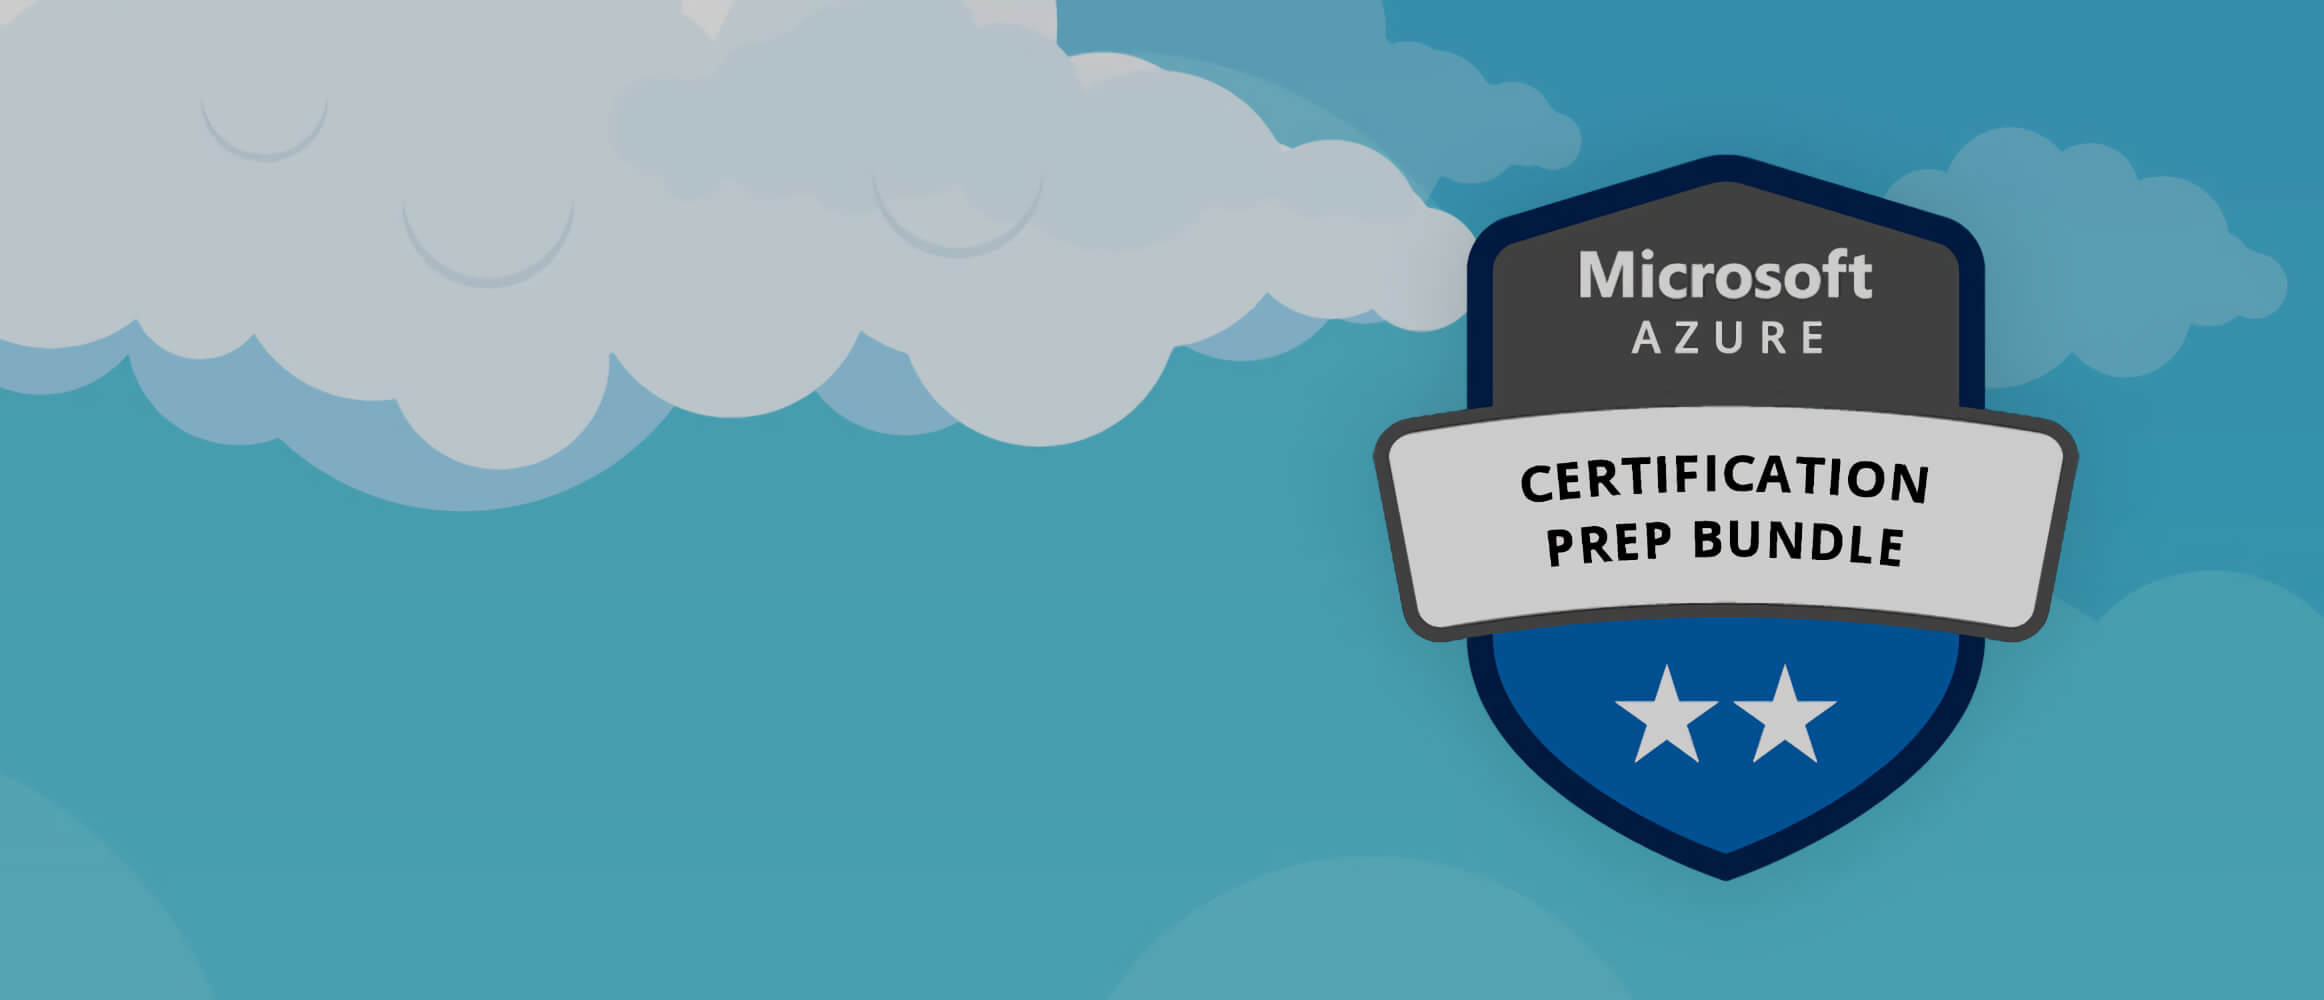 Master Microsoft Azure cloud with this certification prep bundle